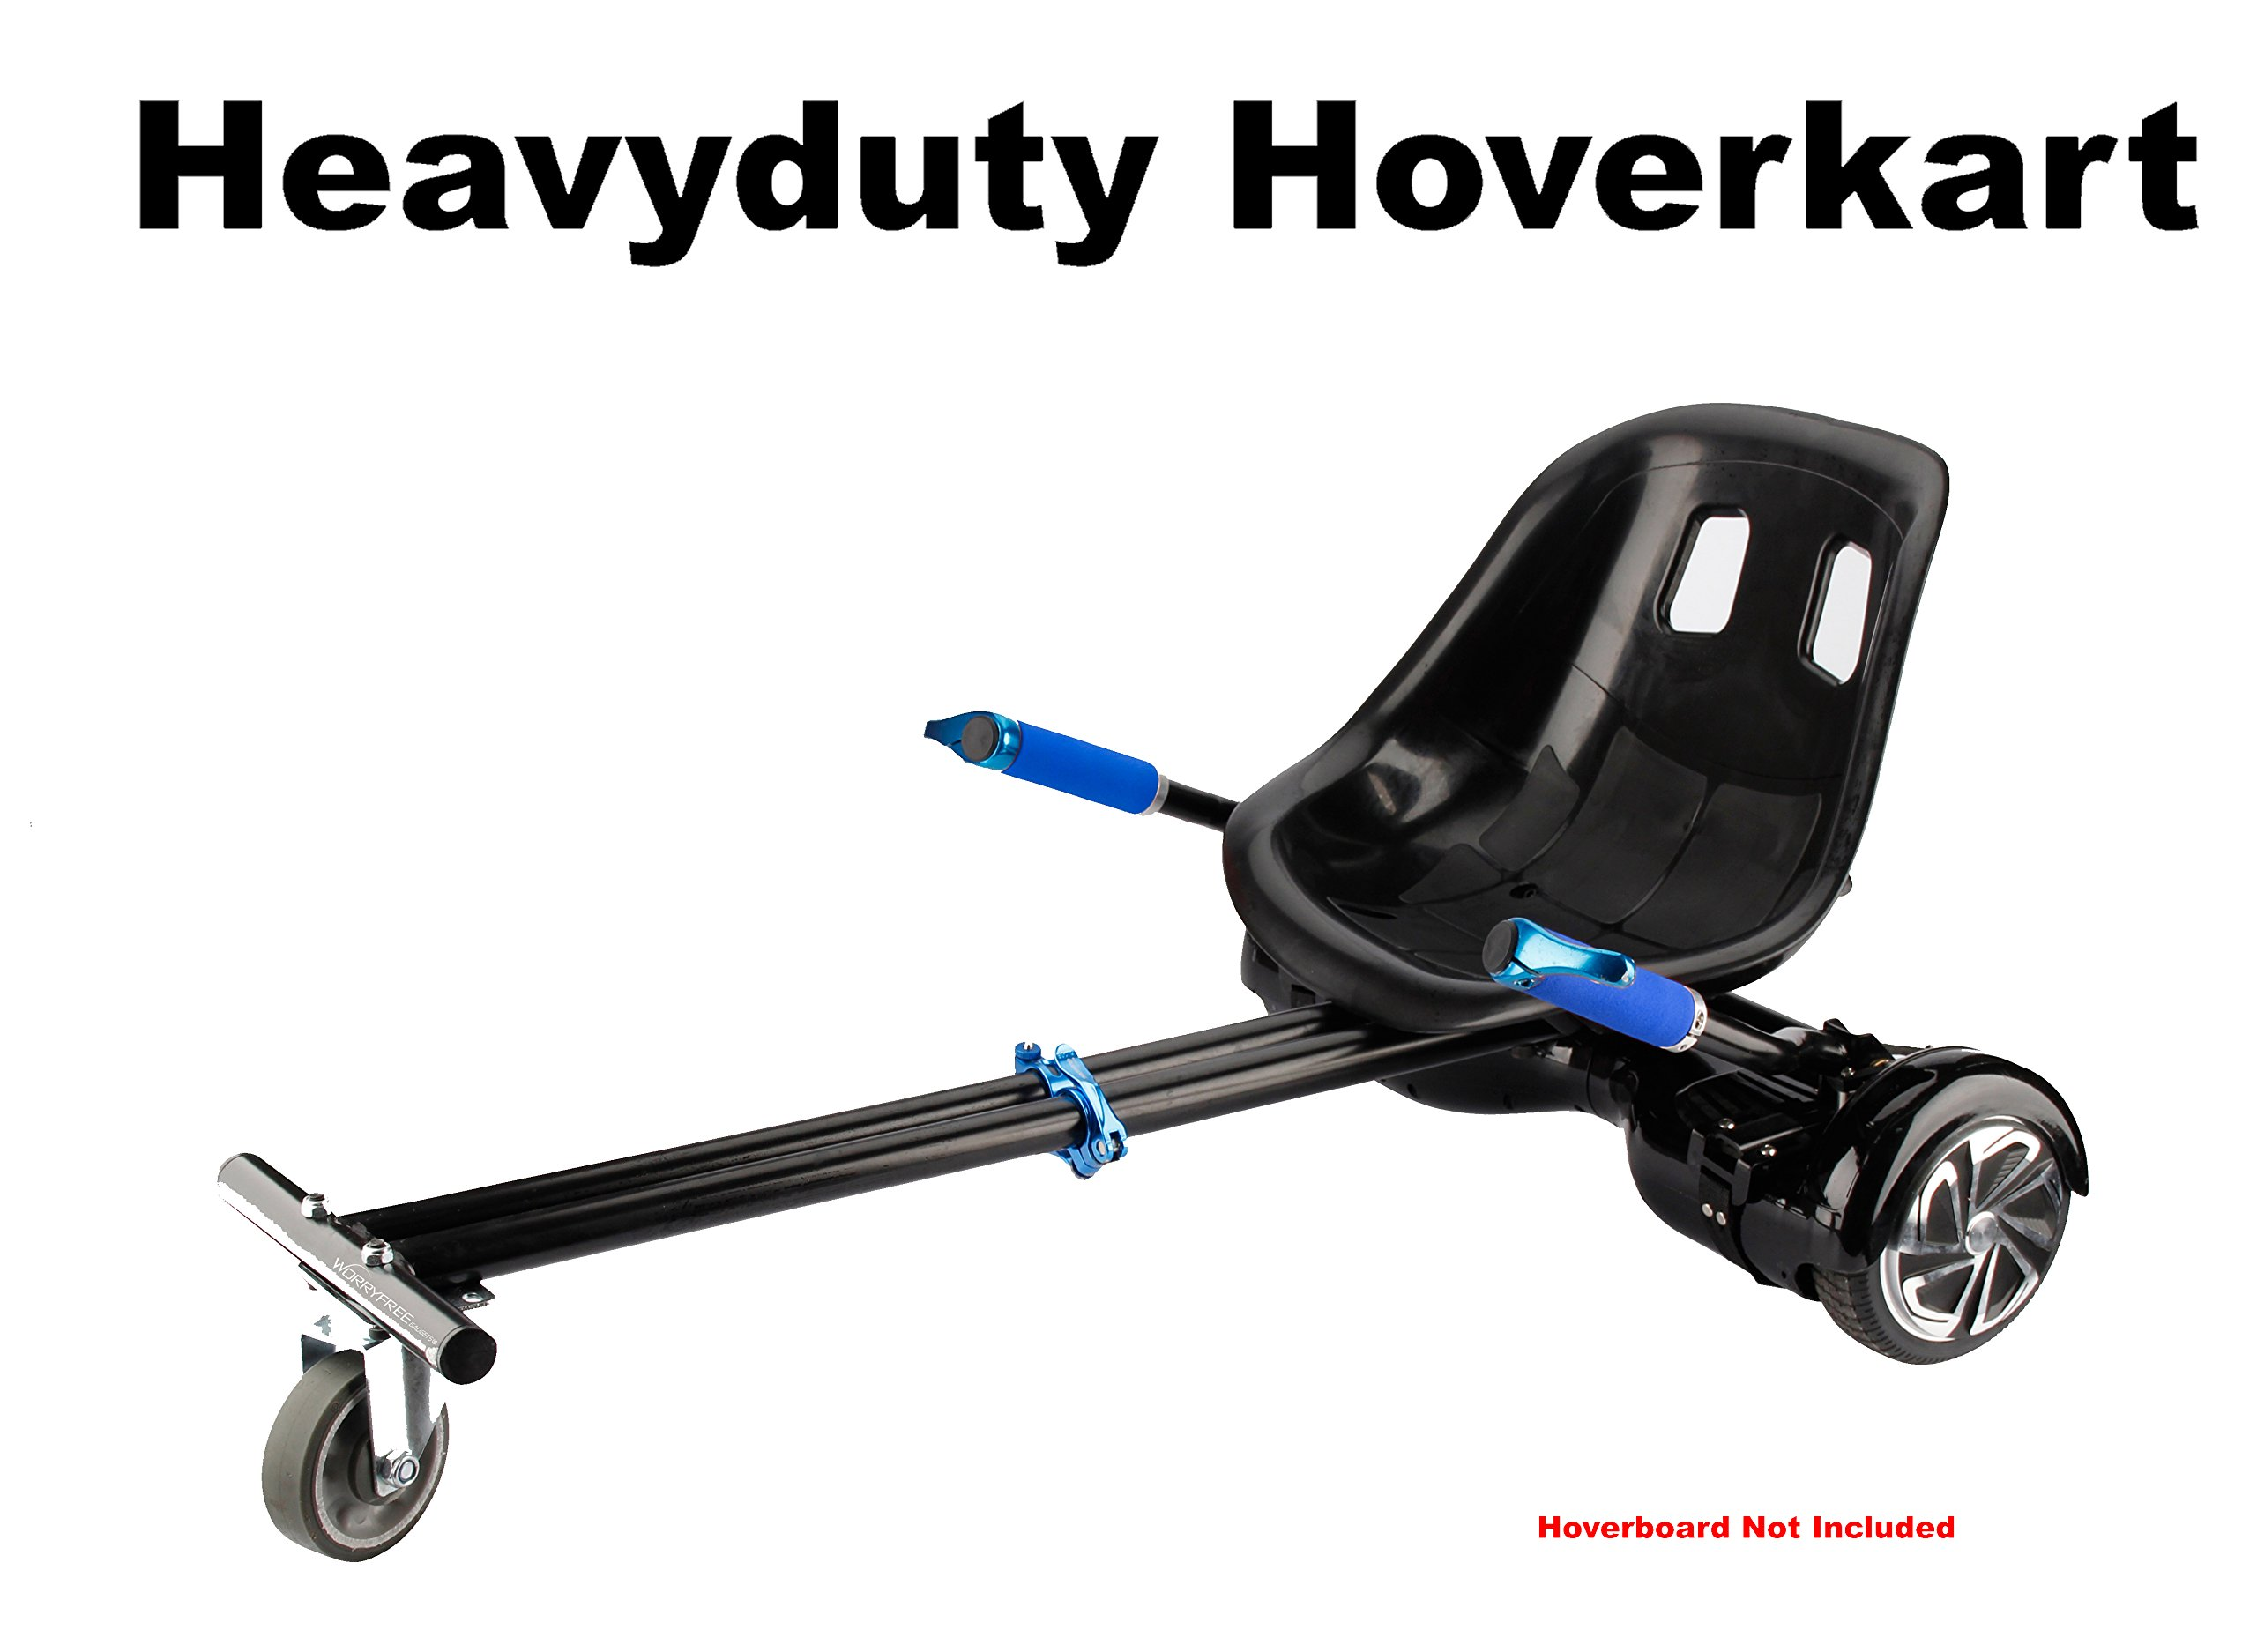 "Heavy Duty Hoverkart Attachment Extra Large extendable length for all size Hoverboards 6.5"", 8"" and 10"" transform Hoverboard into Go-Kart, for Kid to Adult Heavy Duty Frame (Blue)"